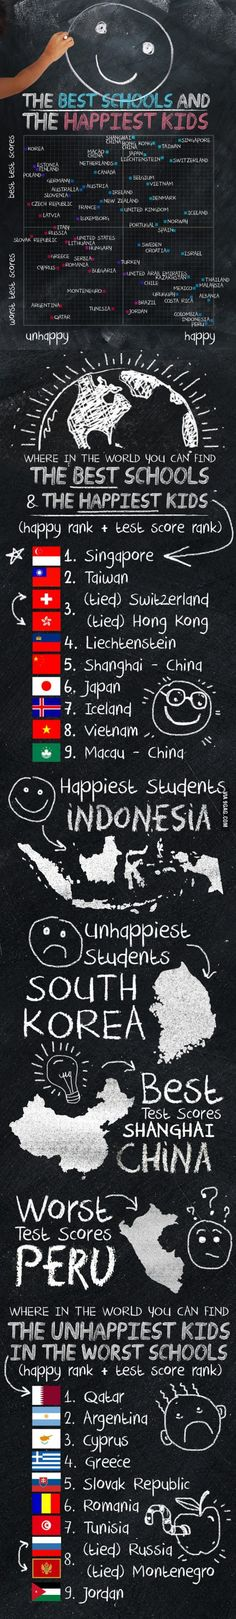 Where In The World You Can Find The Best Schools And The Happiest Kids